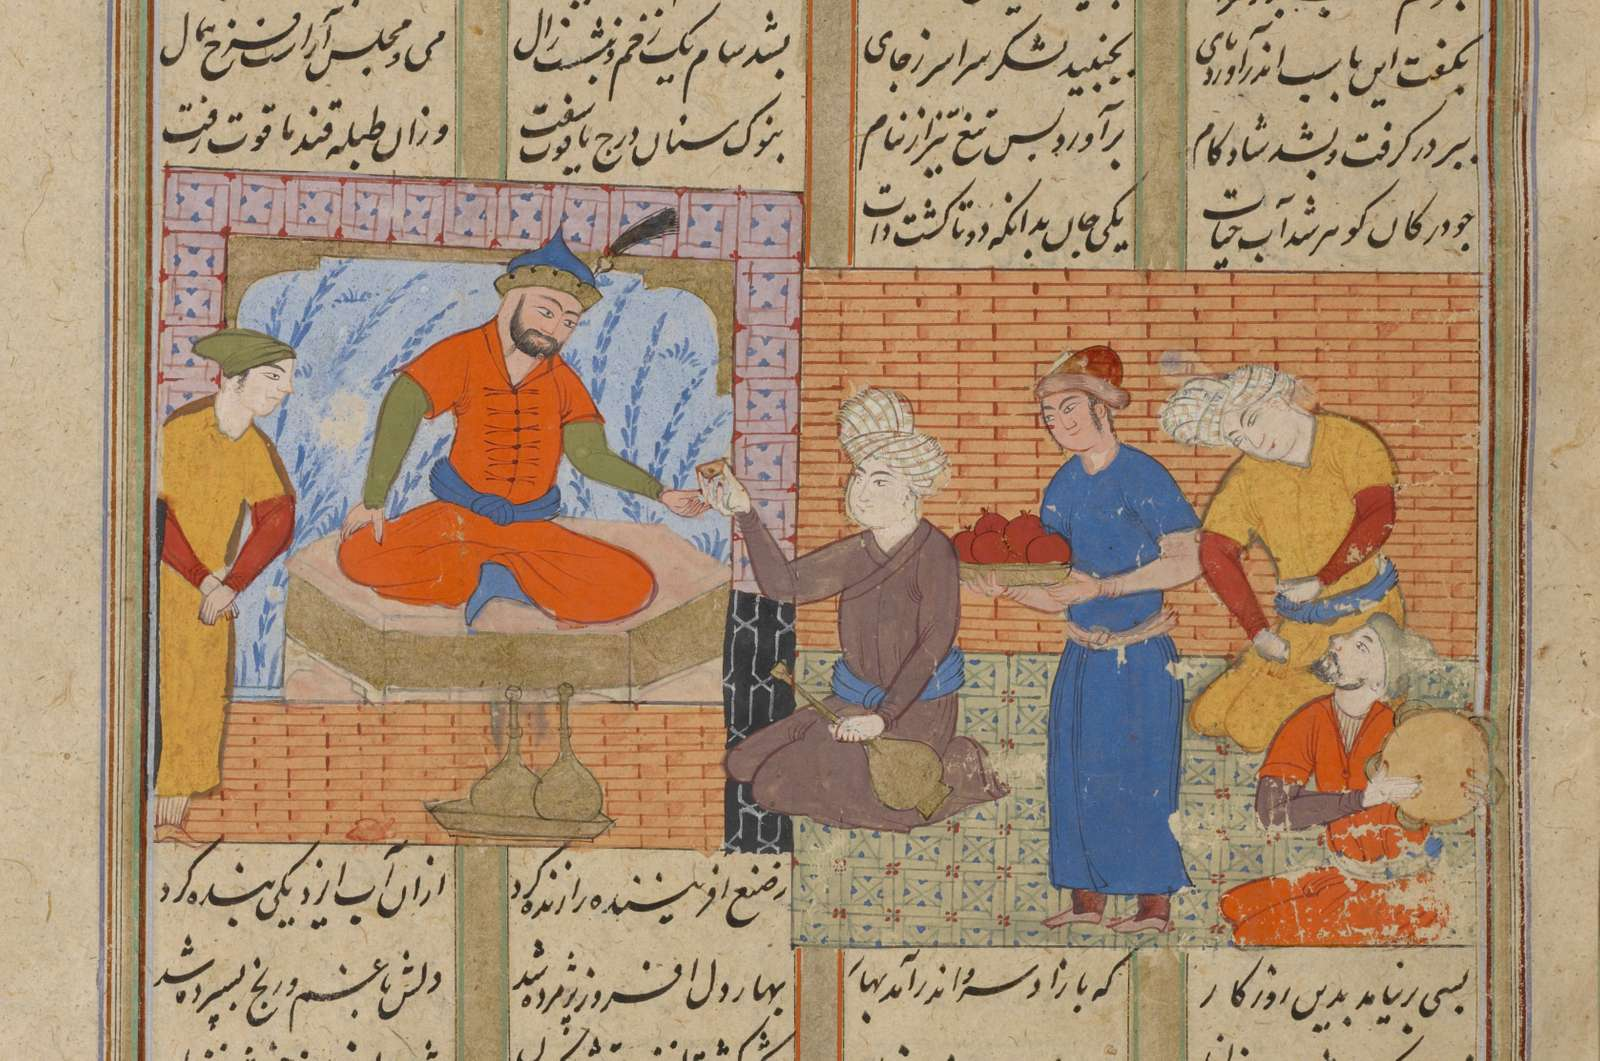 Zâl (with a black beard) celebrates the birth of a son.